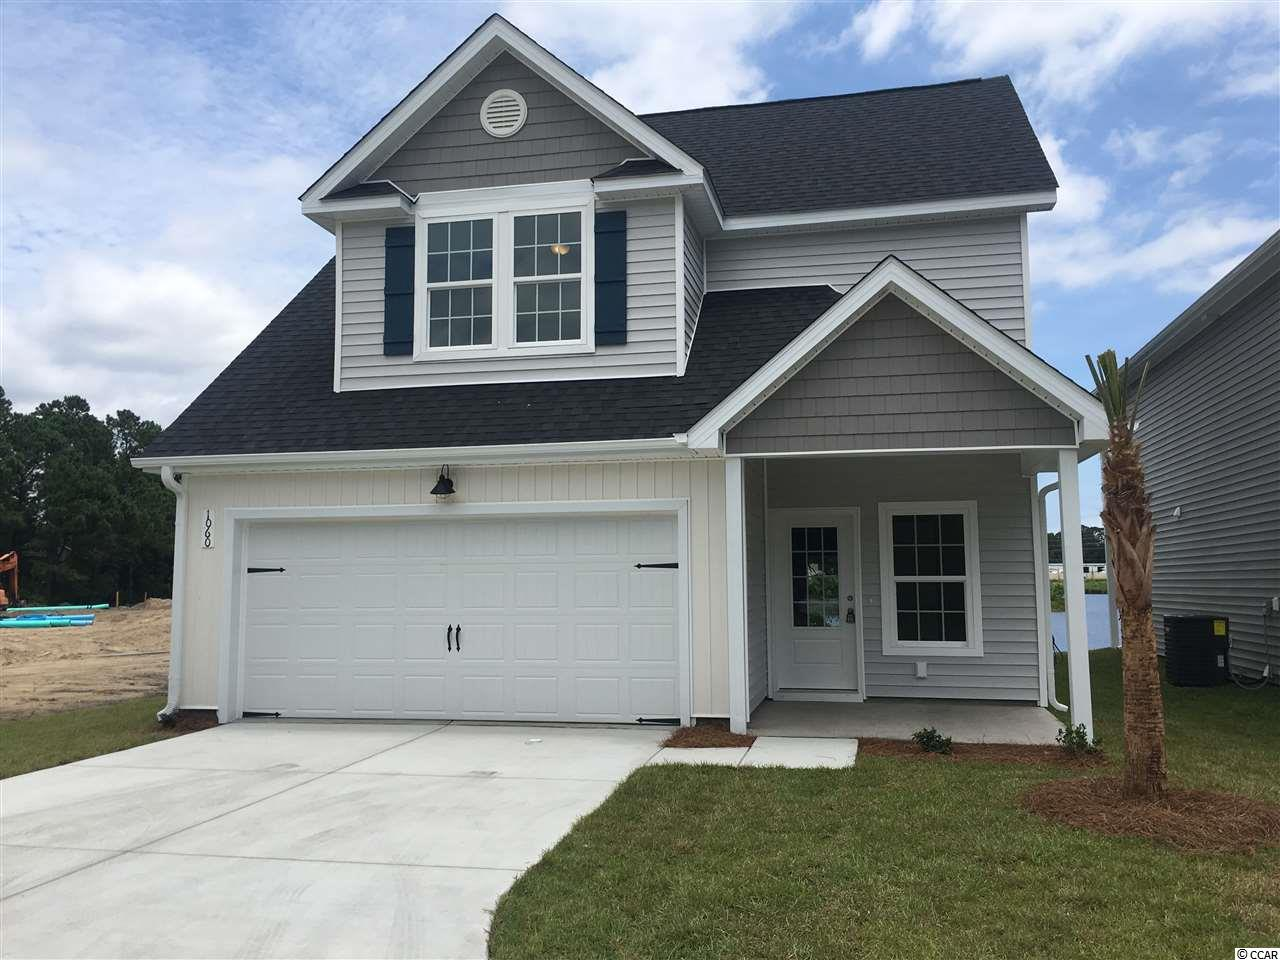 1060 Meadowoods Drive 1060 Meadowoods Drive Murrells Inlet, South Carolina 29576 United States